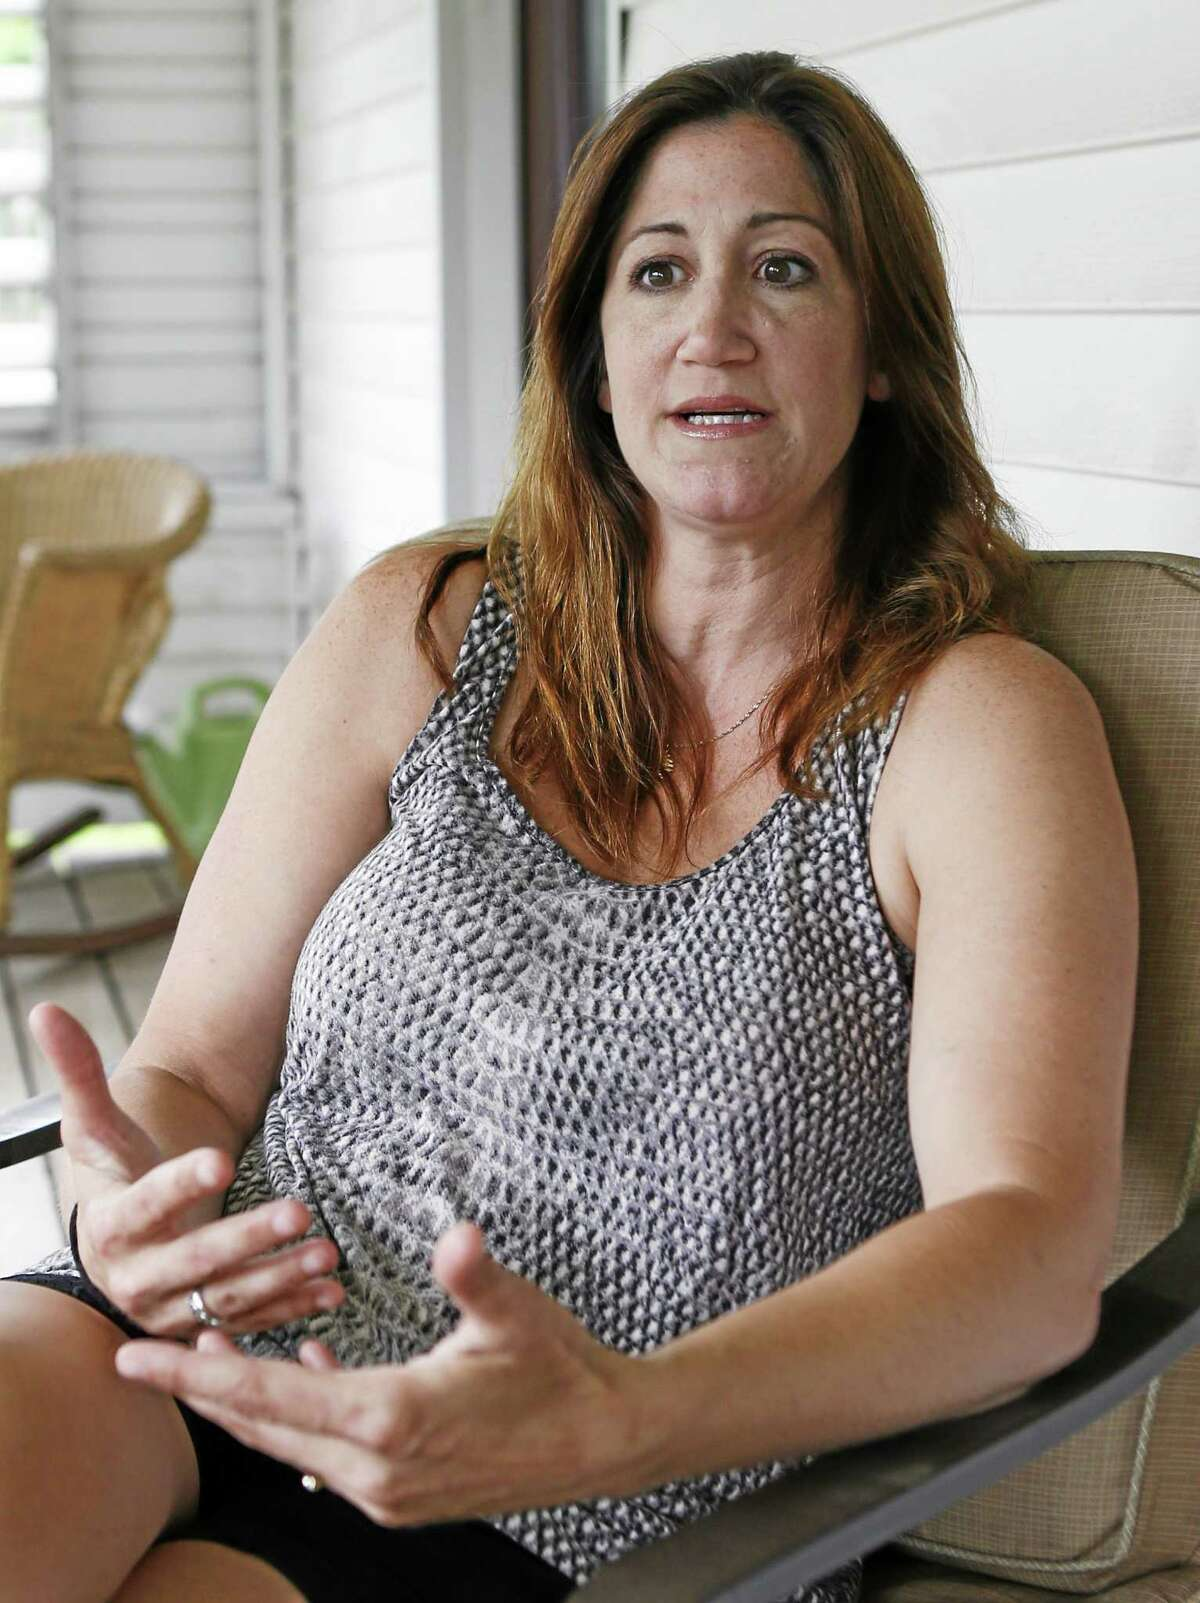 """In this Monday, June 2, 2014, photo, Shannon Spicker, right, sits on her porch in Coraopolis, Pa. and talks about the feelings she had at the time of the O.J. Simpson arrest, trial and decision 20 years-ago. Spicker says """"Most of us didn't understand why it was racially charged."""""""